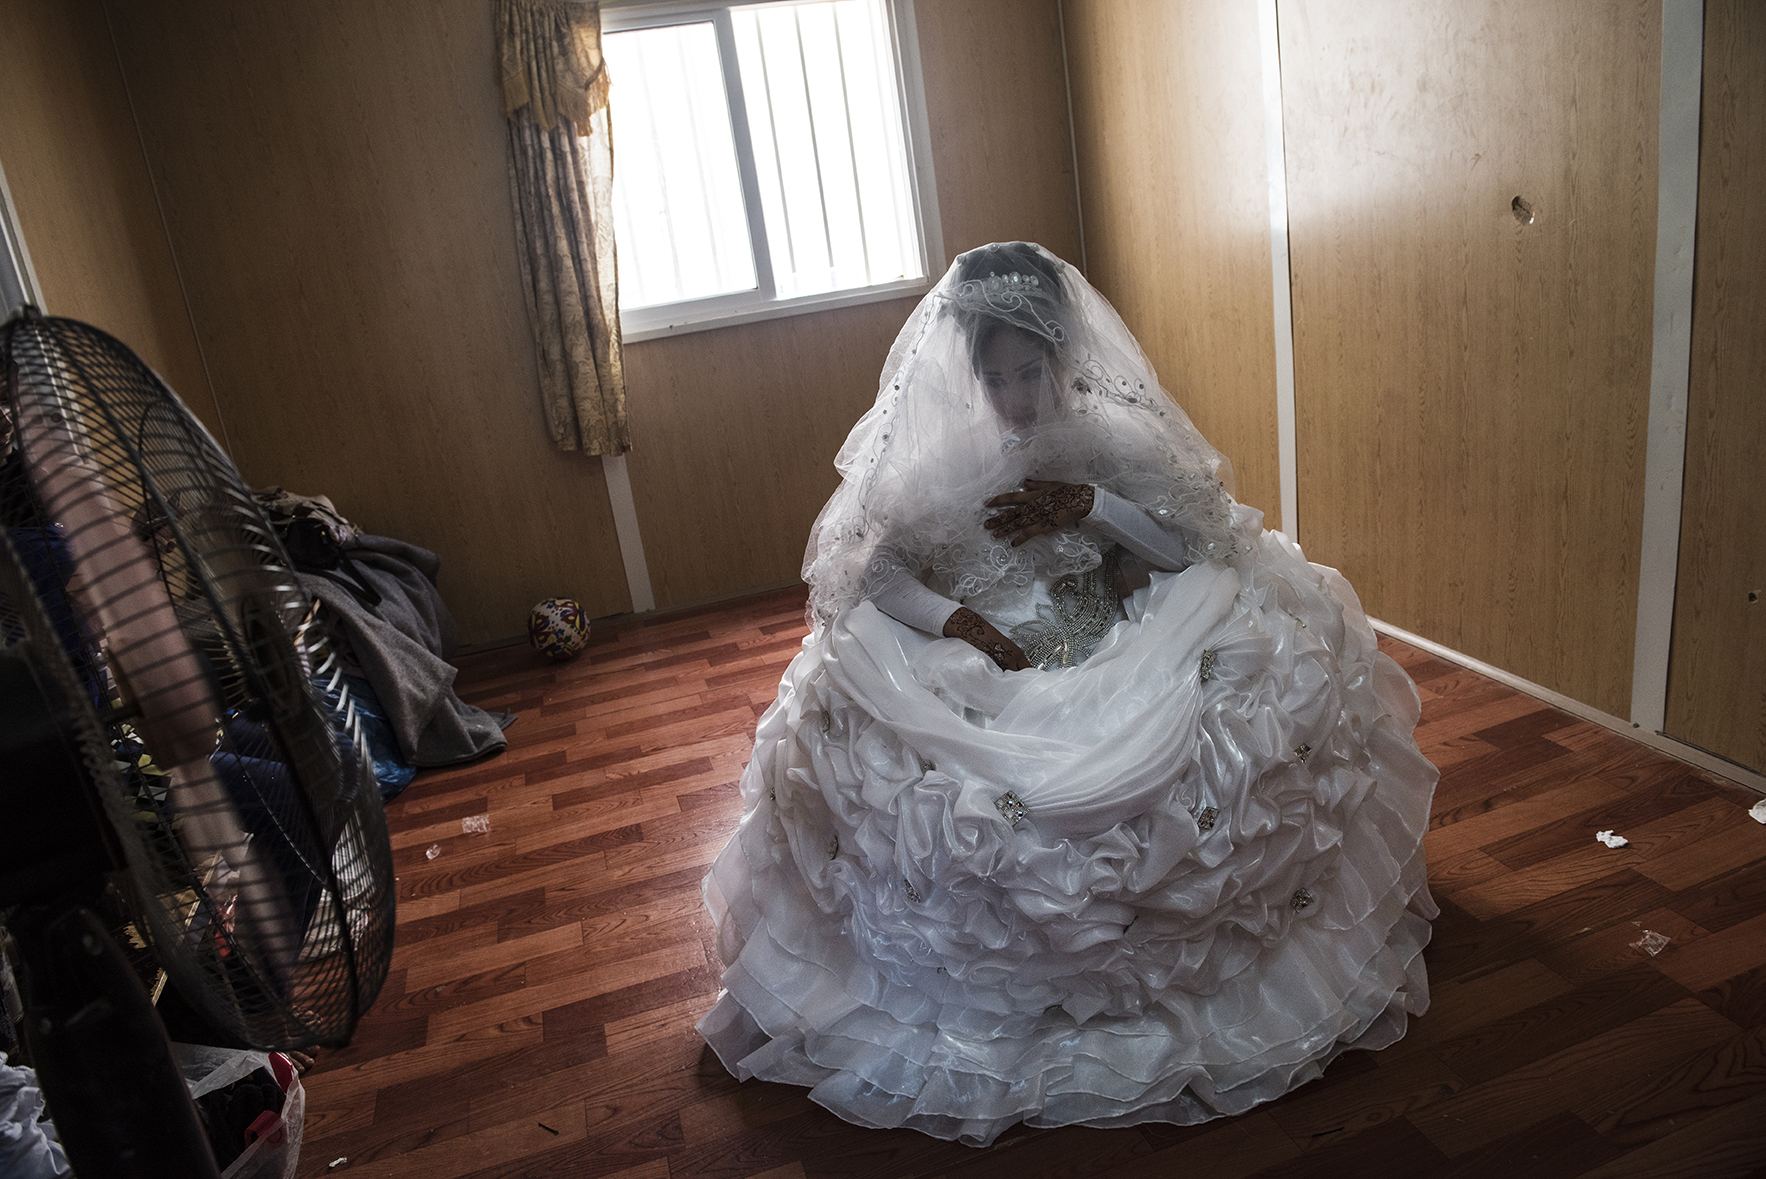 Noor, age unknown (roughly 16), awaits her groom in a beauty salon in the Zaatari refugee camp in Jordan, August 25, 2014. While marriage under the age of eighteen was a common Syrian tradition before the start of the civil war, more and more Syrian girls are marrying at a younger age because of the insecurity of the war,  because many families feel the girls in their family may be sexually harassed if they are not under the care of a husband, and because of prospect of alleviating the financial burden of one more mouth to feed.